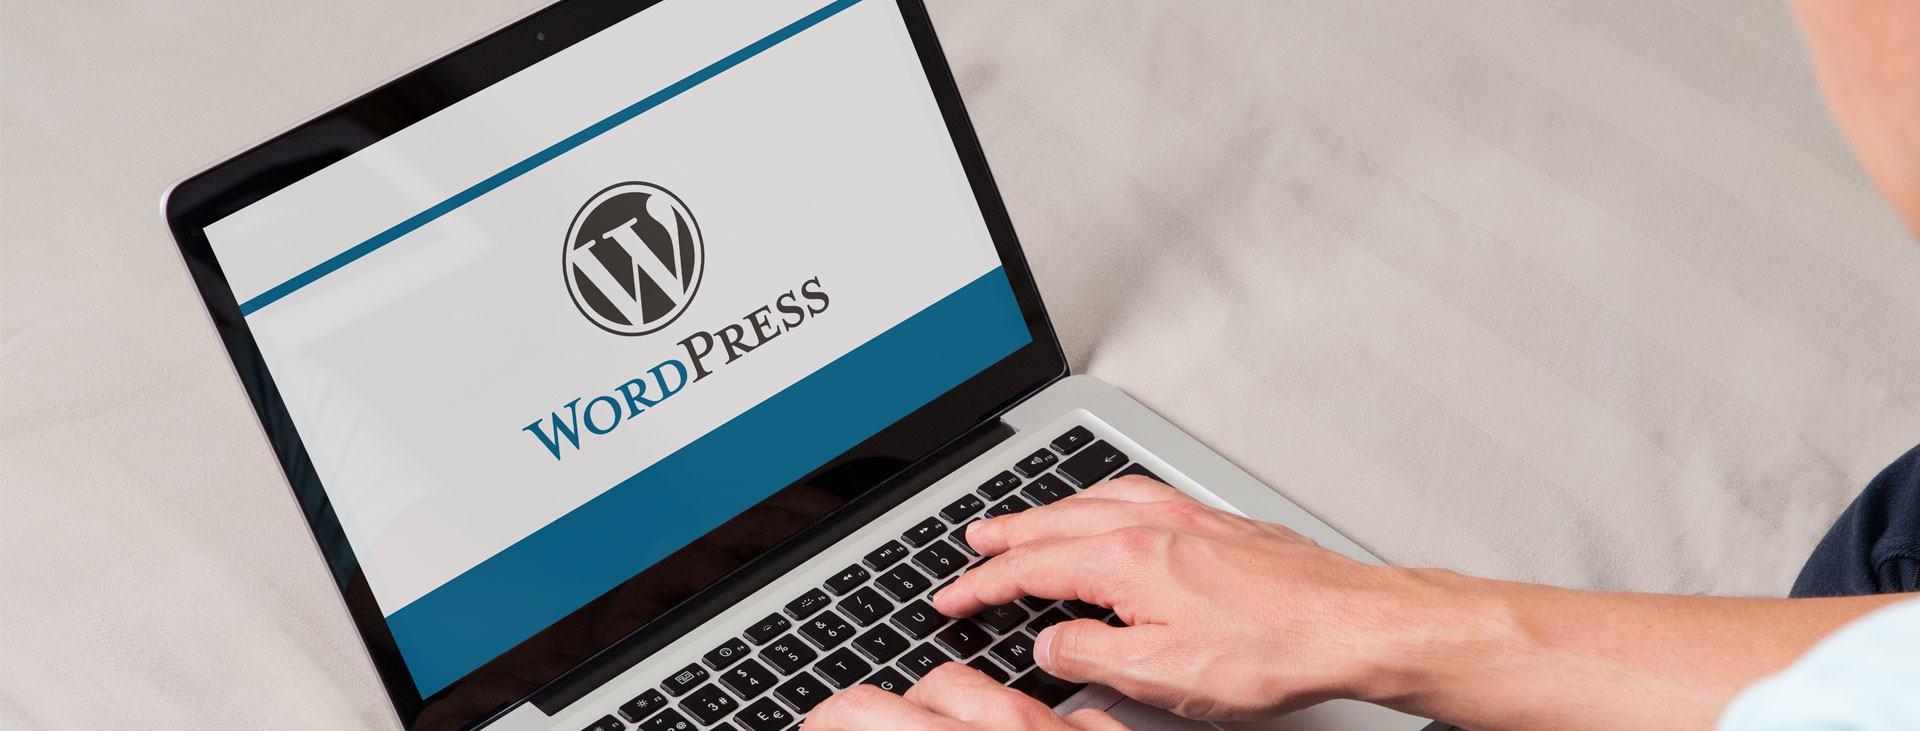 WordPress 5.2 update delivers more security